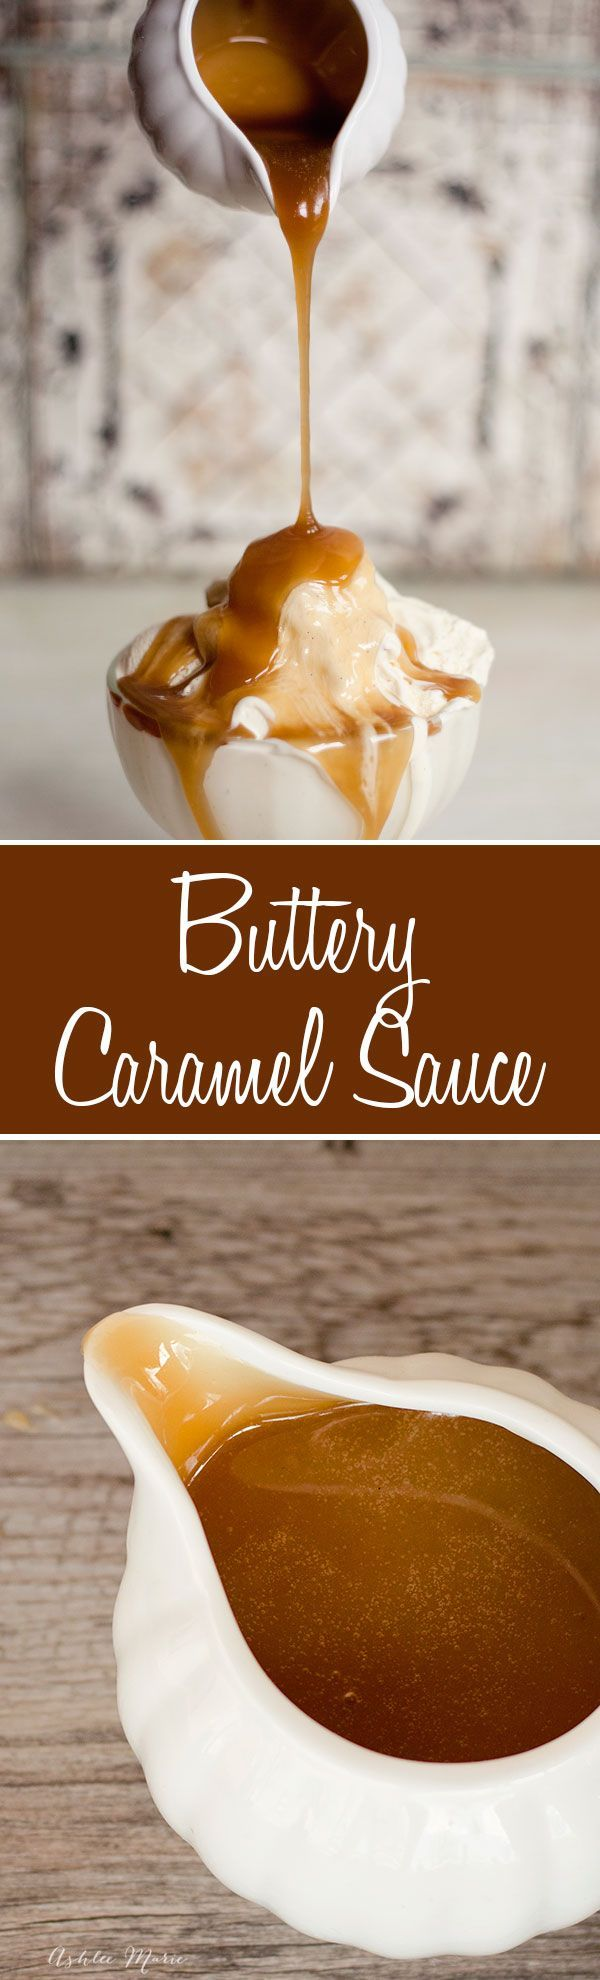 this homemade caramel sauce is buttery perfection, I eat it straight from the container, on ice cream cheesecake and more